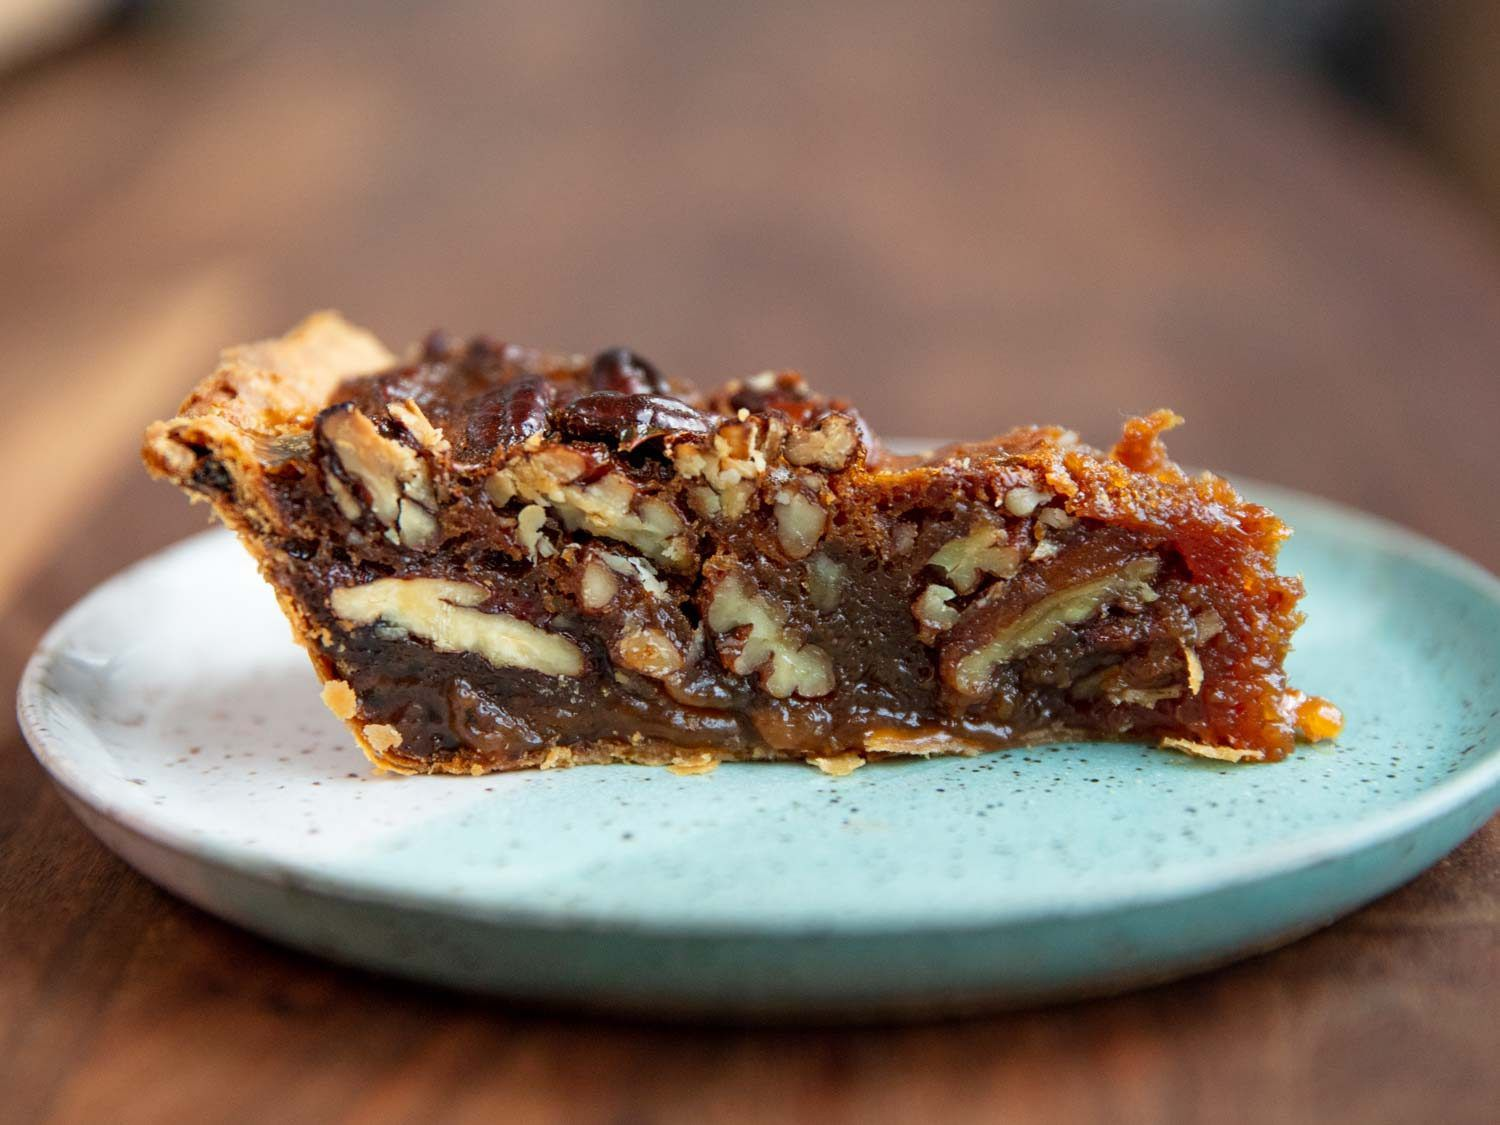 A slice of pecan pie on a plate